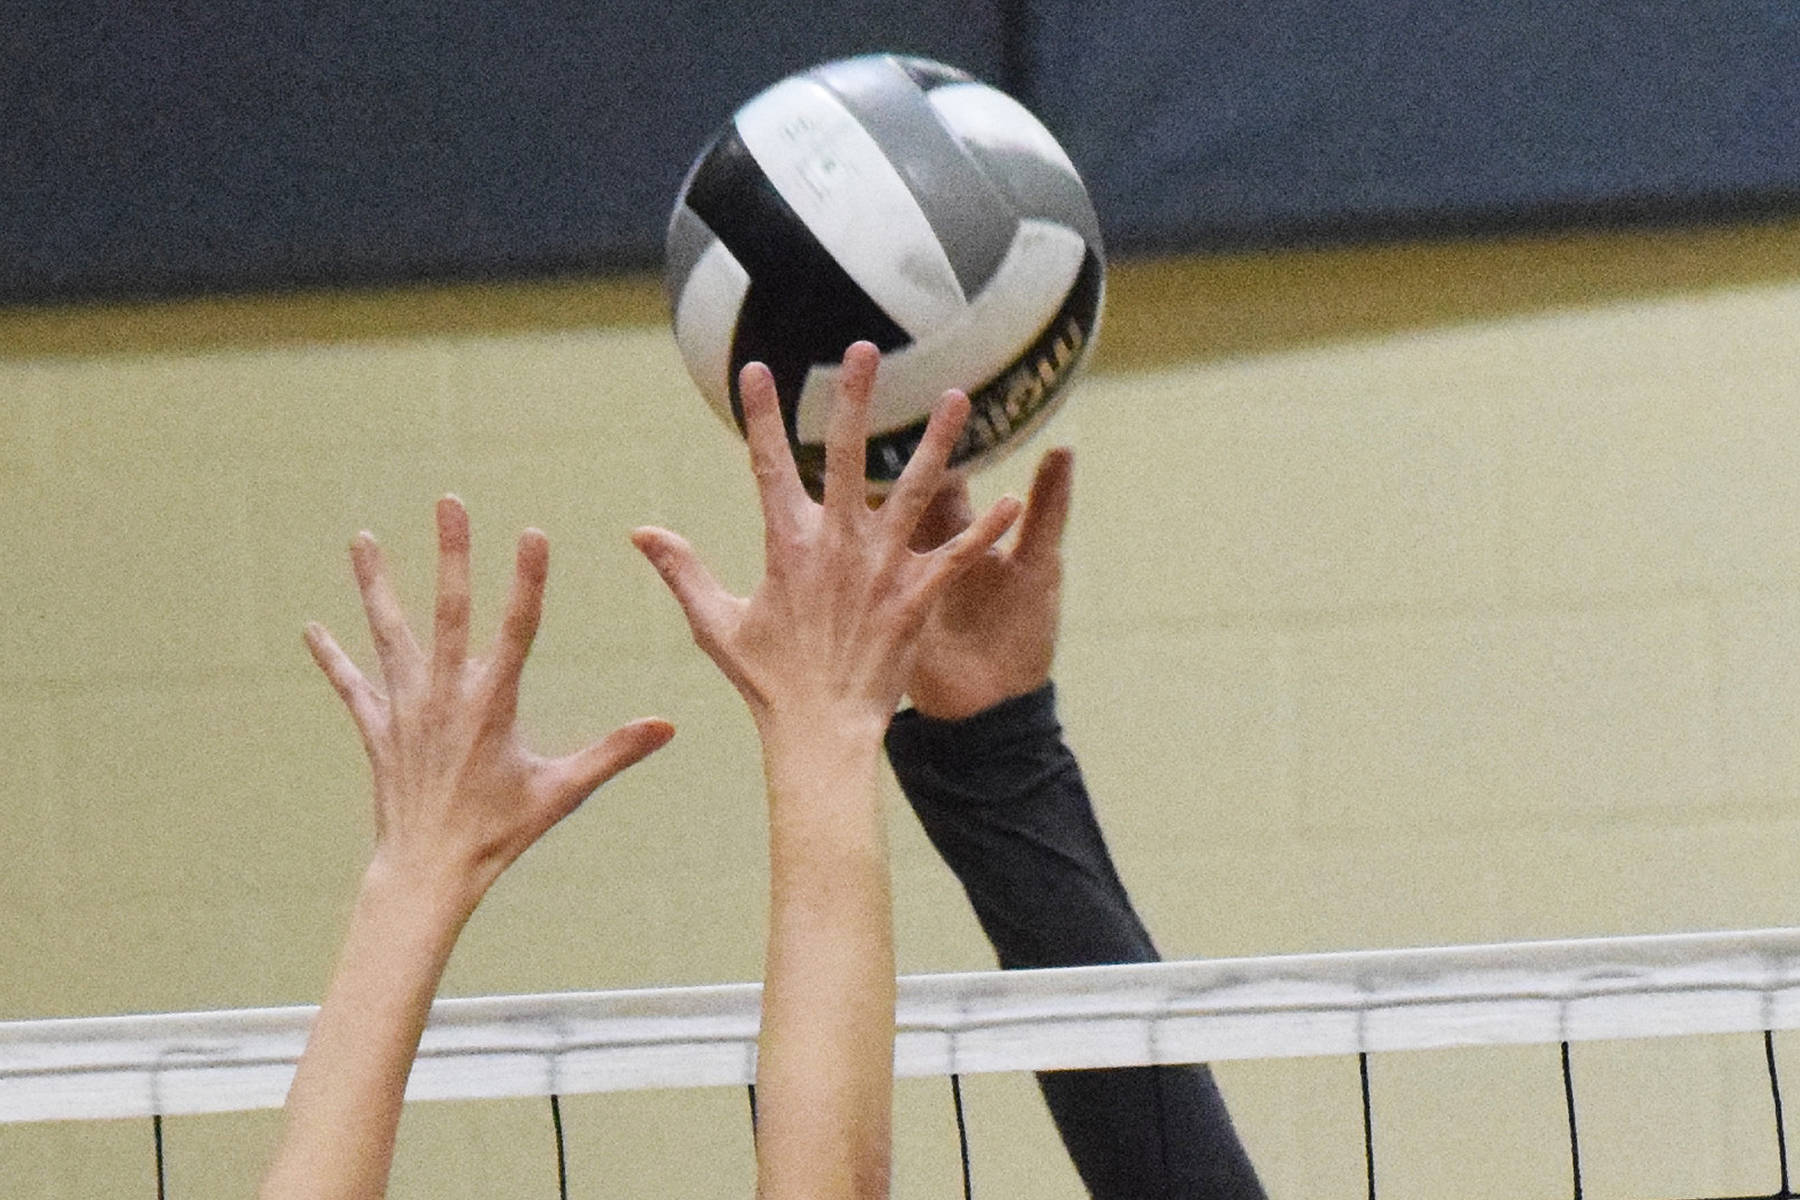 Nikolaevsk wins 1st day at Mix Six state volleyball